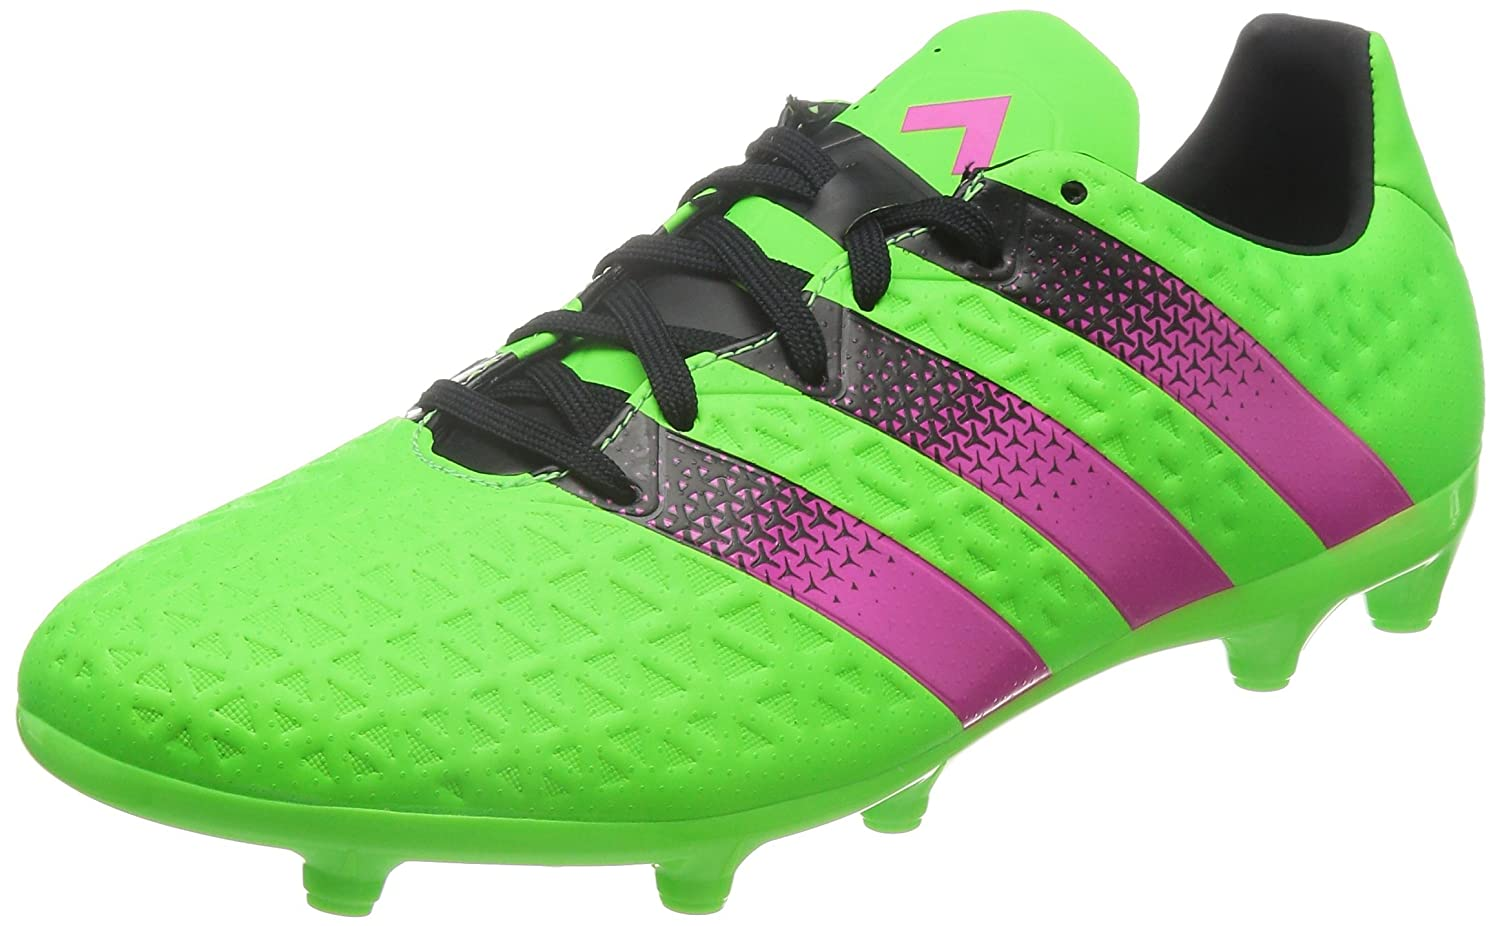 online store 6f886 574dc Adidas Men's Ace 16.3 FG/AG Firm Ground Soccer Shoe Green